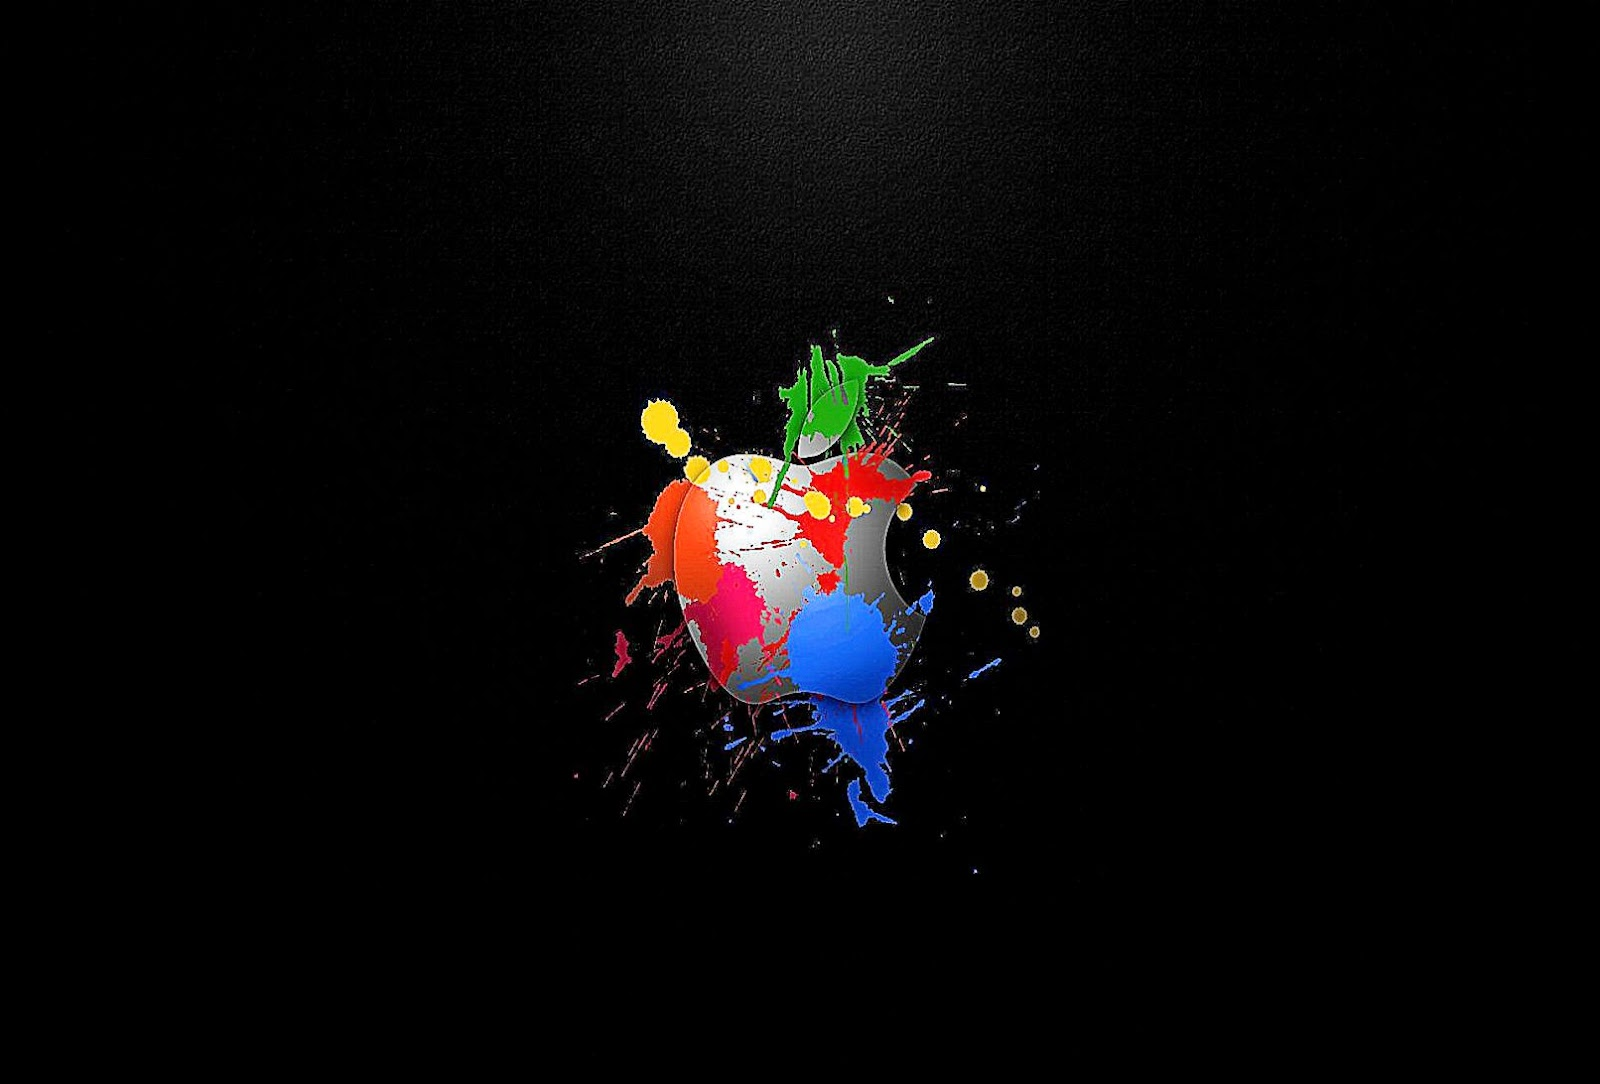 Colored Splatter Apple Wallpaper and Photo High Resolution Download